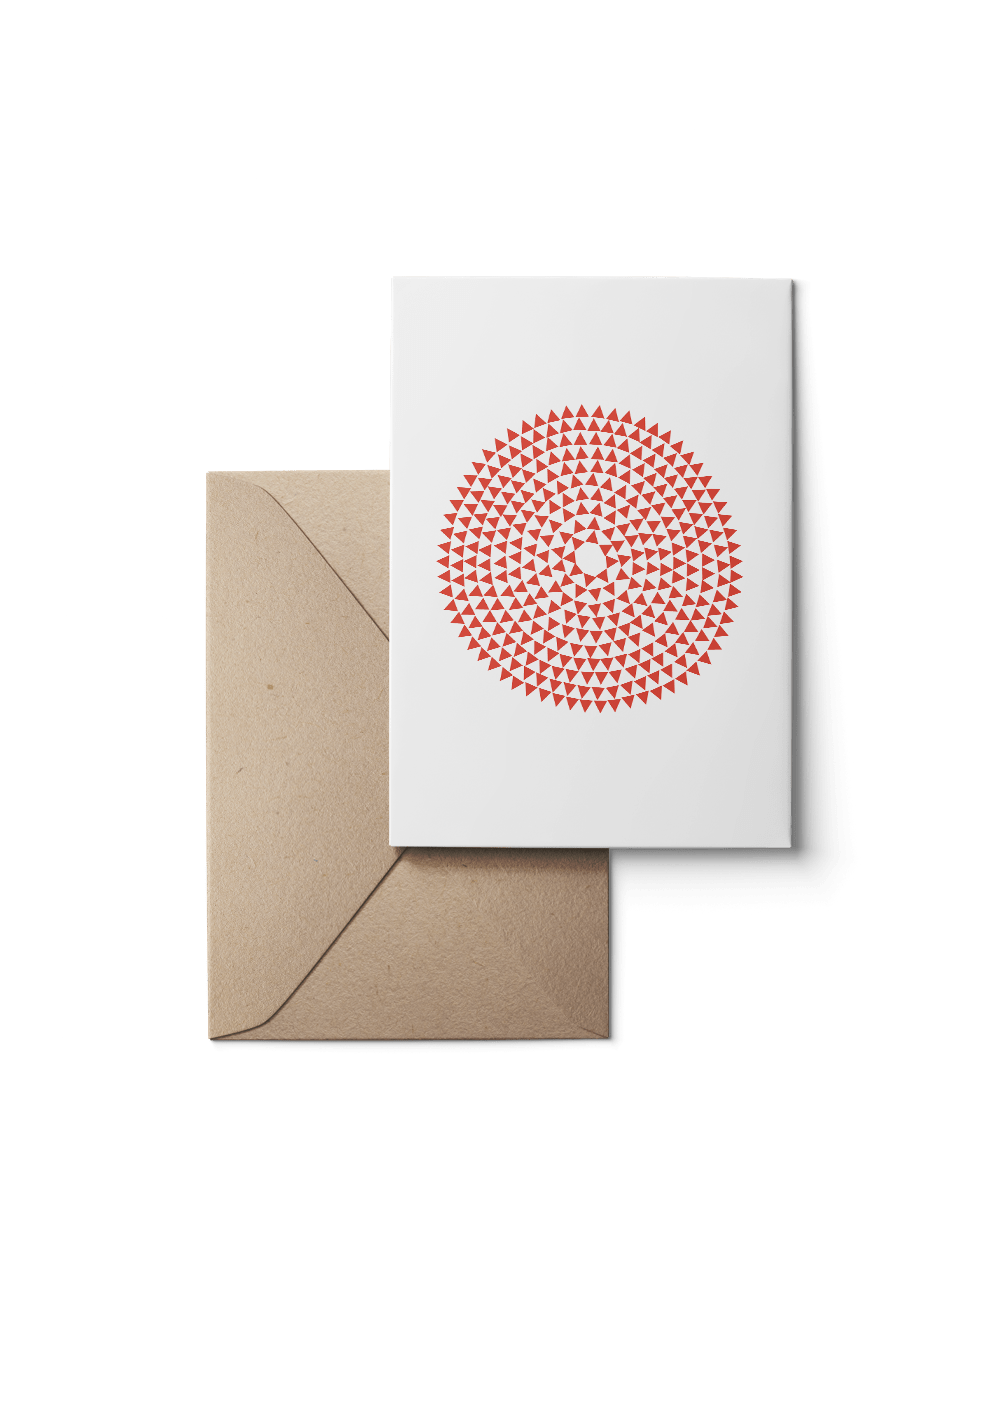 Murmurs, Red, Eco, Grußkarte, 6 Karten Set by Karten Design Fabrik. Supplier of designer Greeting Cards, Gift Wrap, Christmas Cards & Invitations to leading design stores including Connox, Modulor, Magazin & Manufactum.